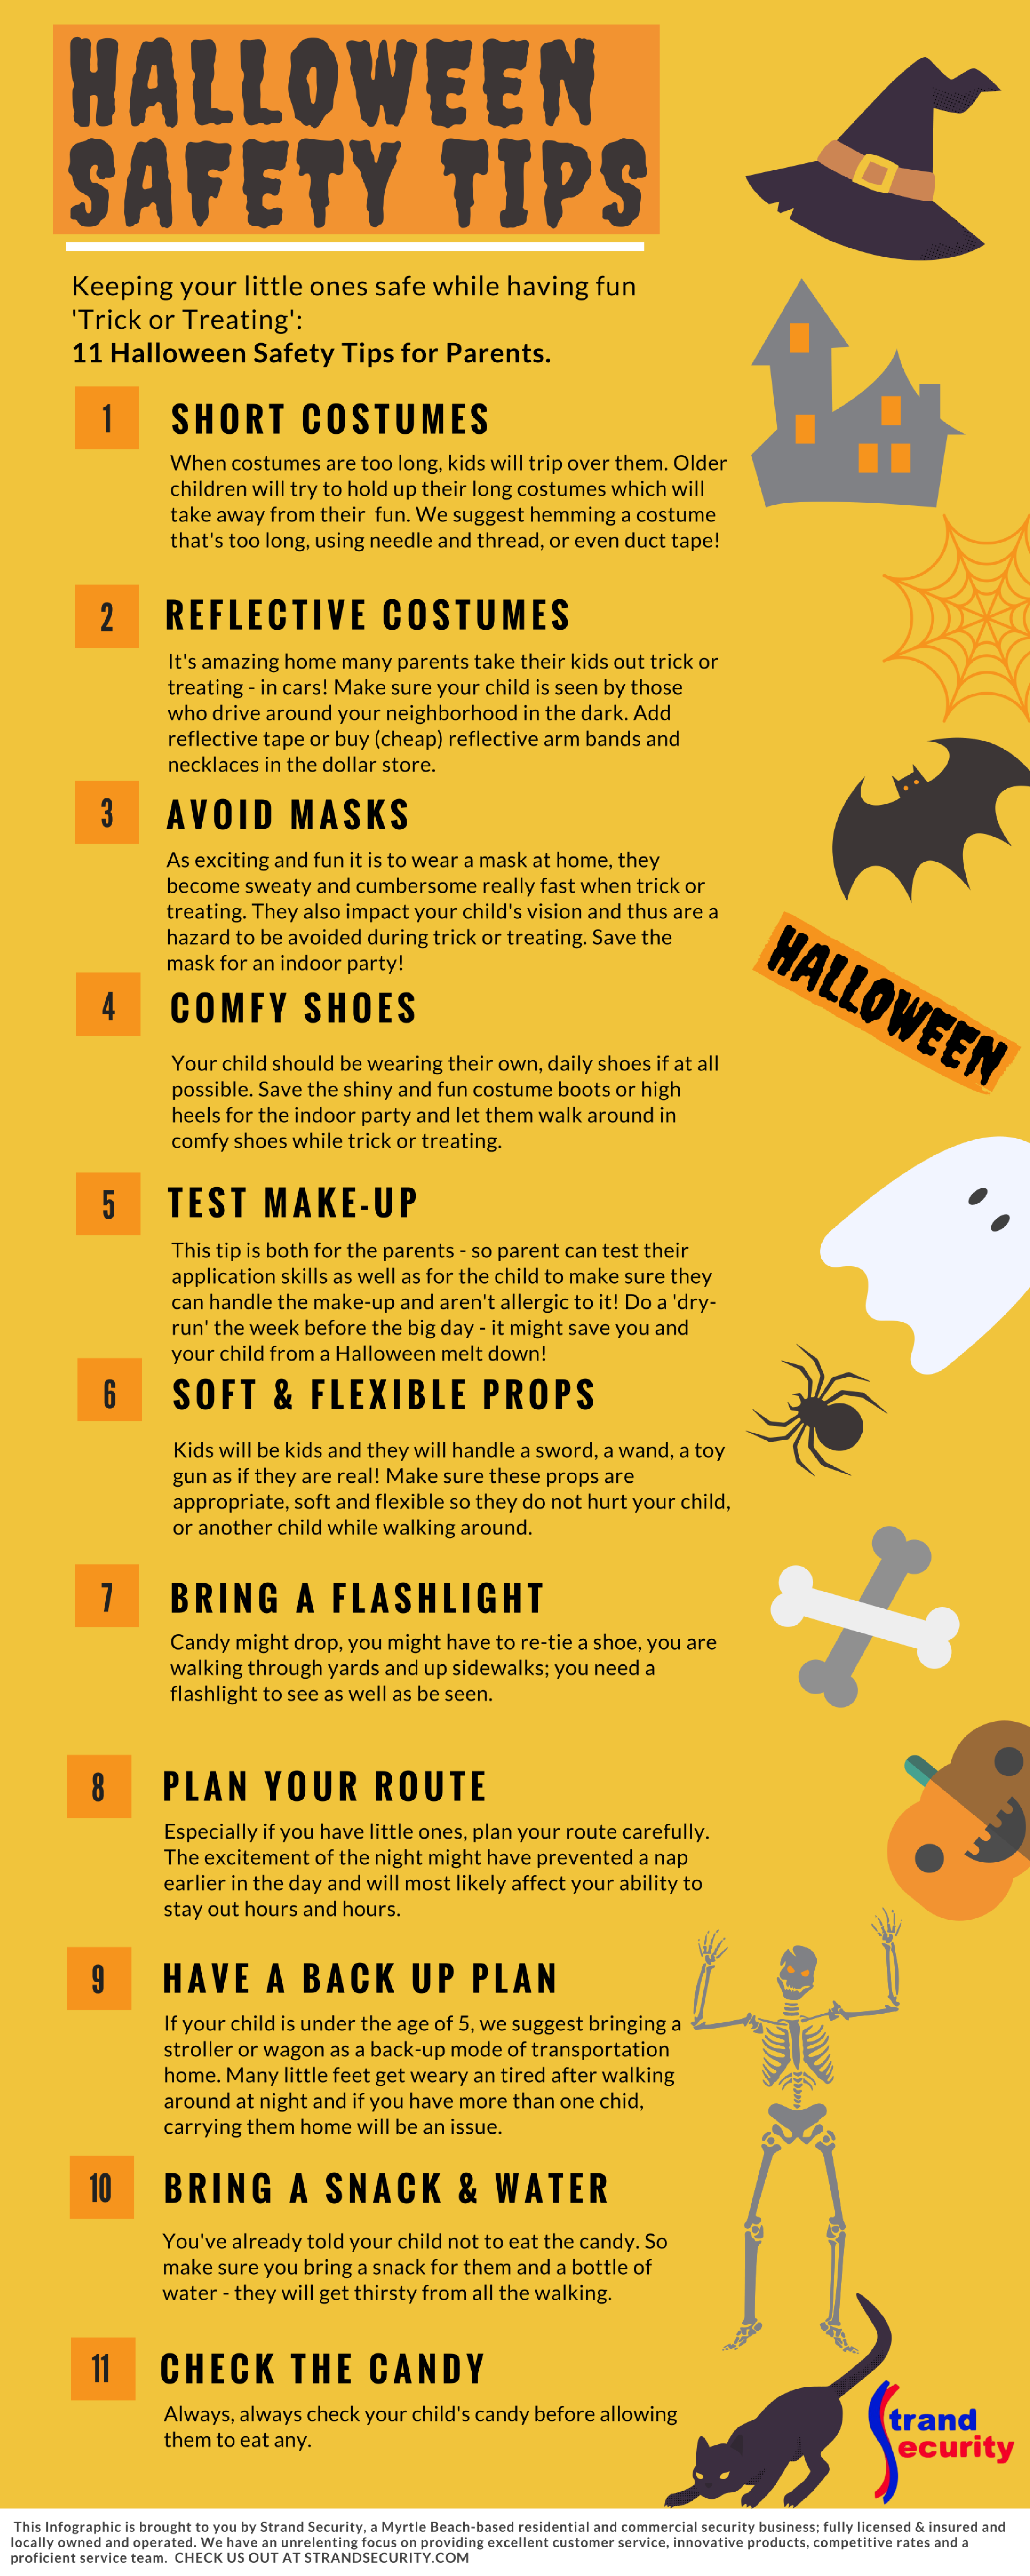 Halloween Safety Tips for Parents - Take your child Trick or Treating Safely - Infographic